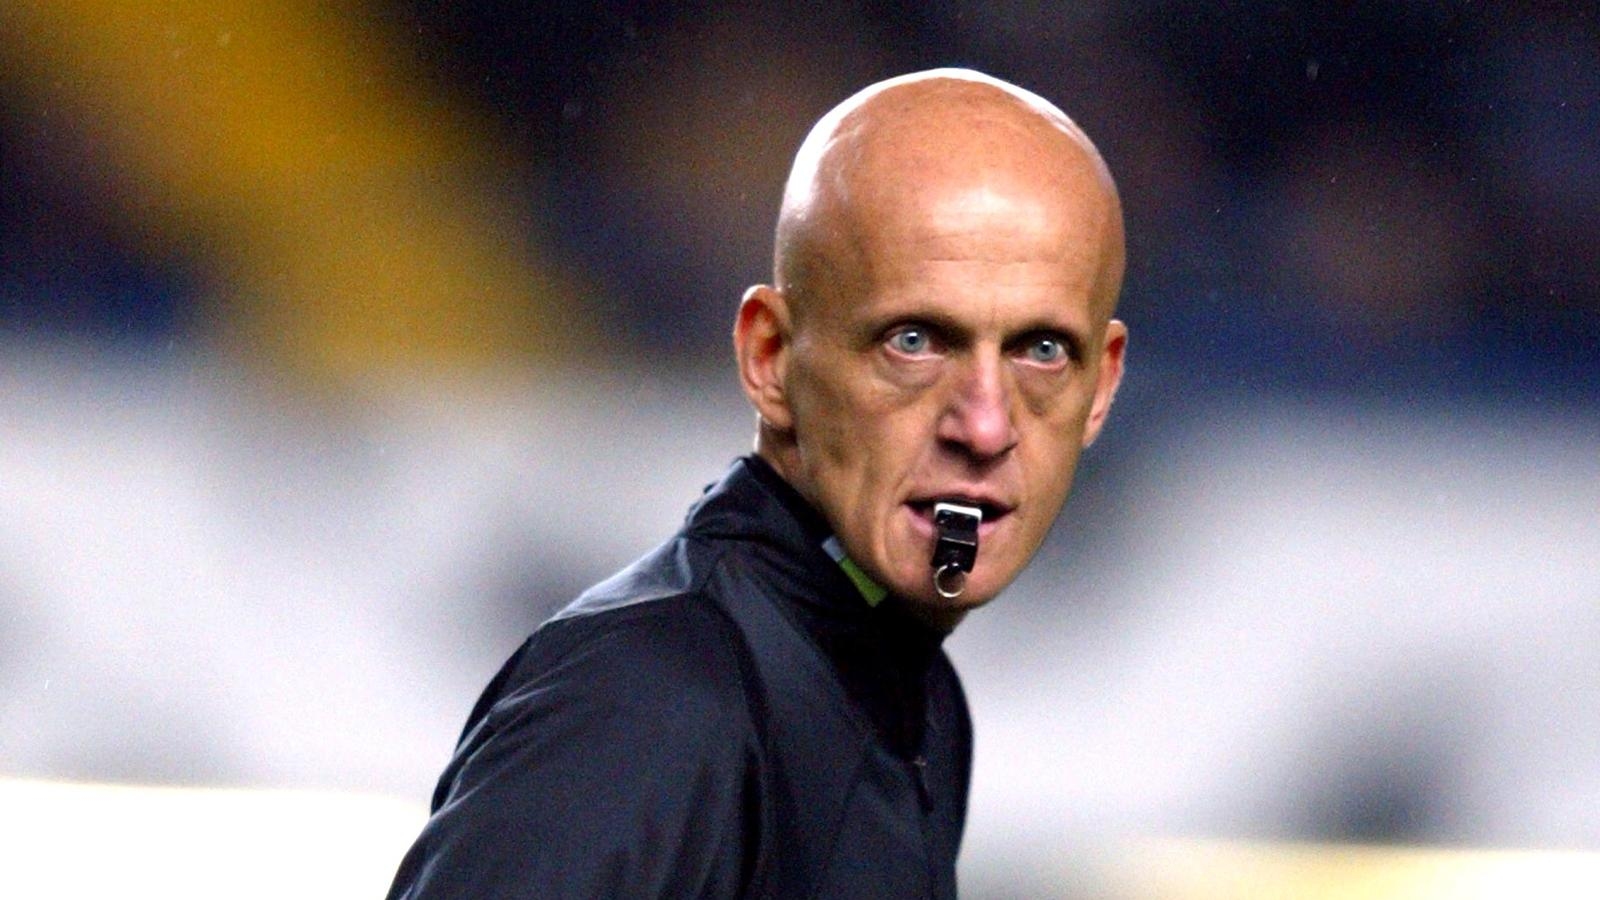 Simply the Best - PierLuigi Collini was the number one referee in the world.